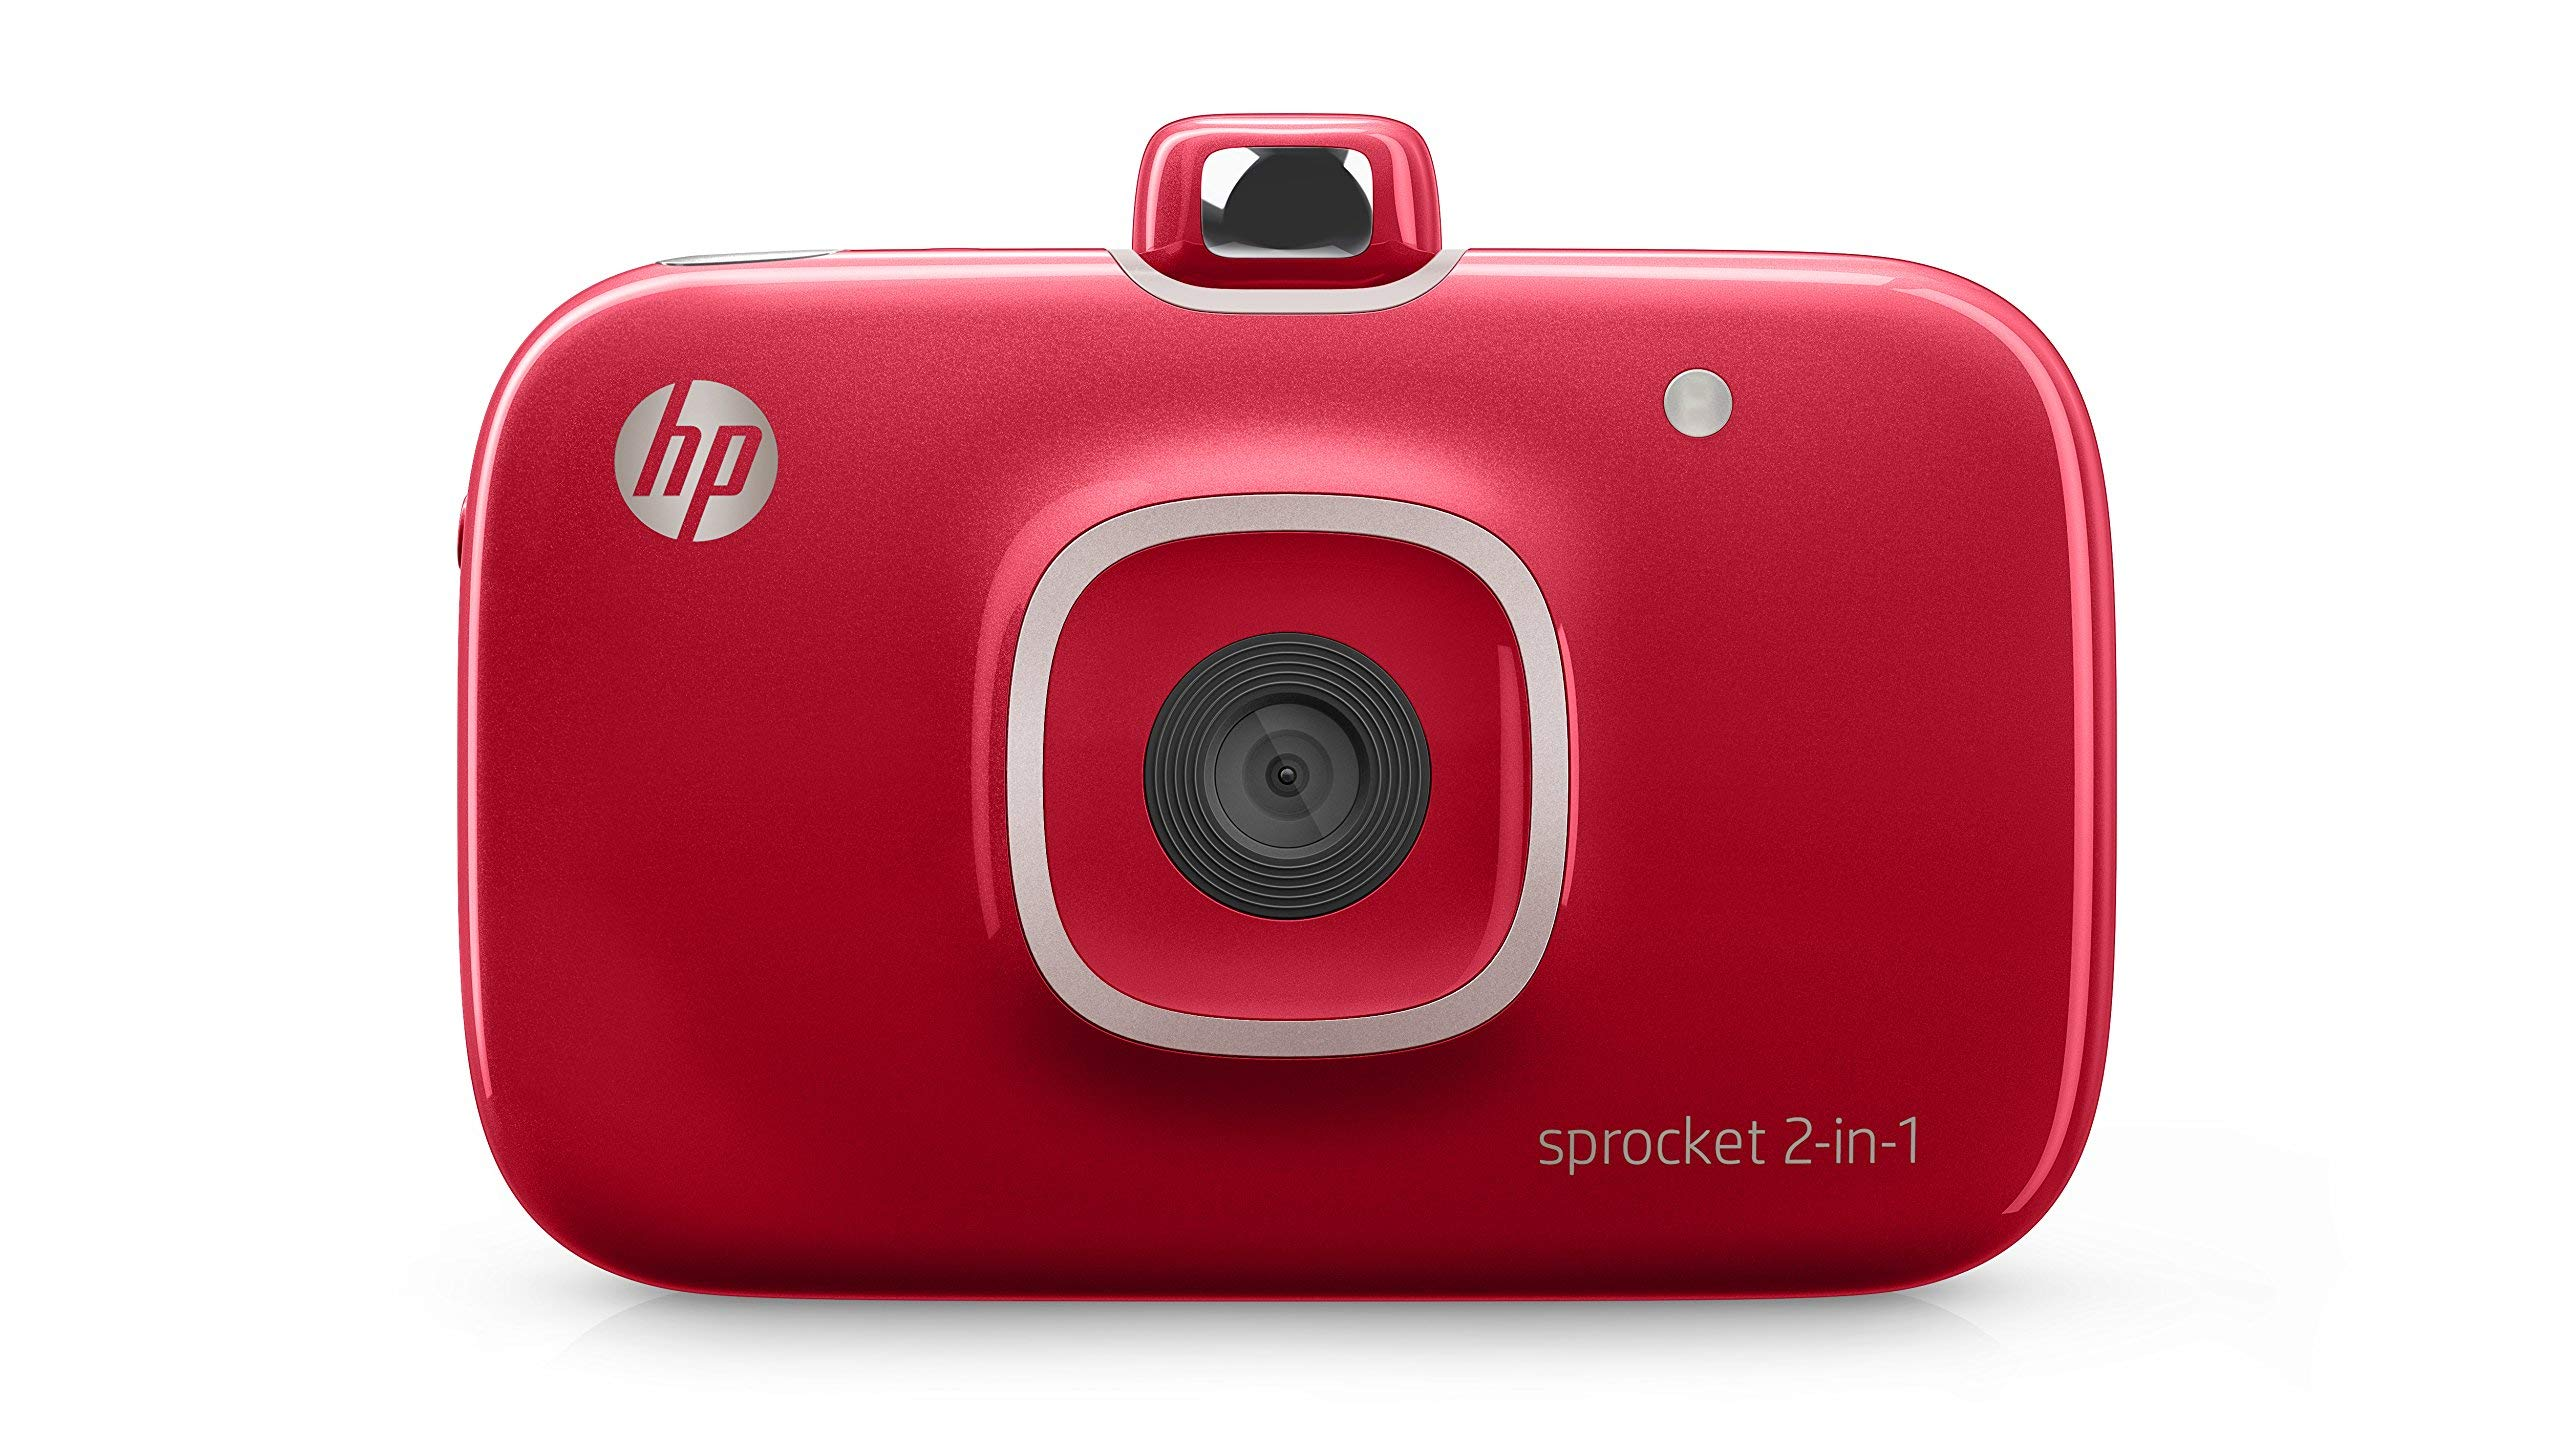 HP 2FB98A#B1H Sprocket 2-in-1 Portable Photo Printer and Instant Camera, print social media photos on 2x3 inch sticky-backed paper - Red (2FB98A) (2FB96A#742) (Renewed) by HP